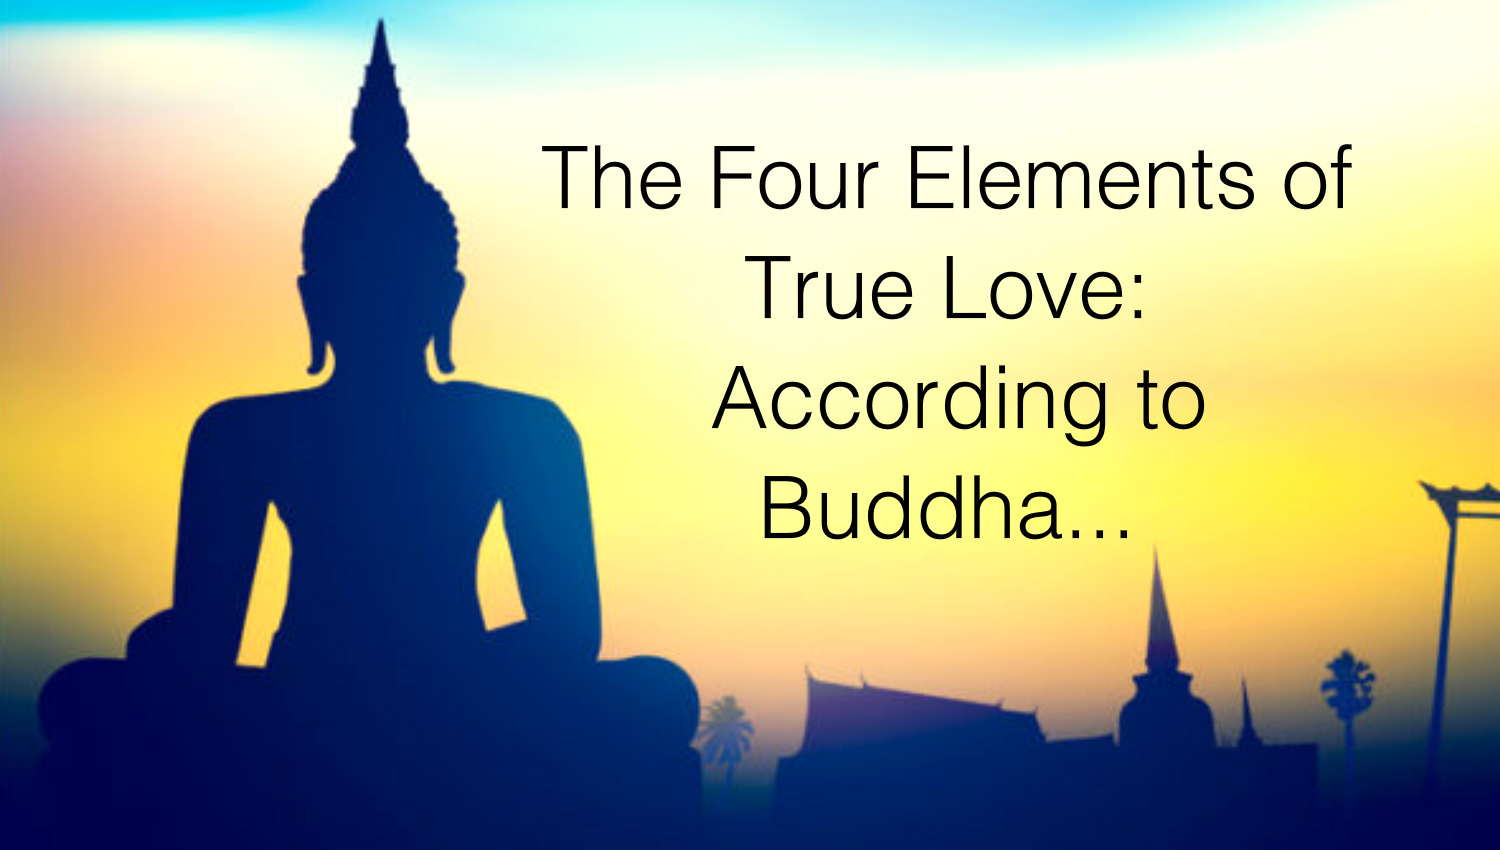 awesome quotes according to buddha these are the four